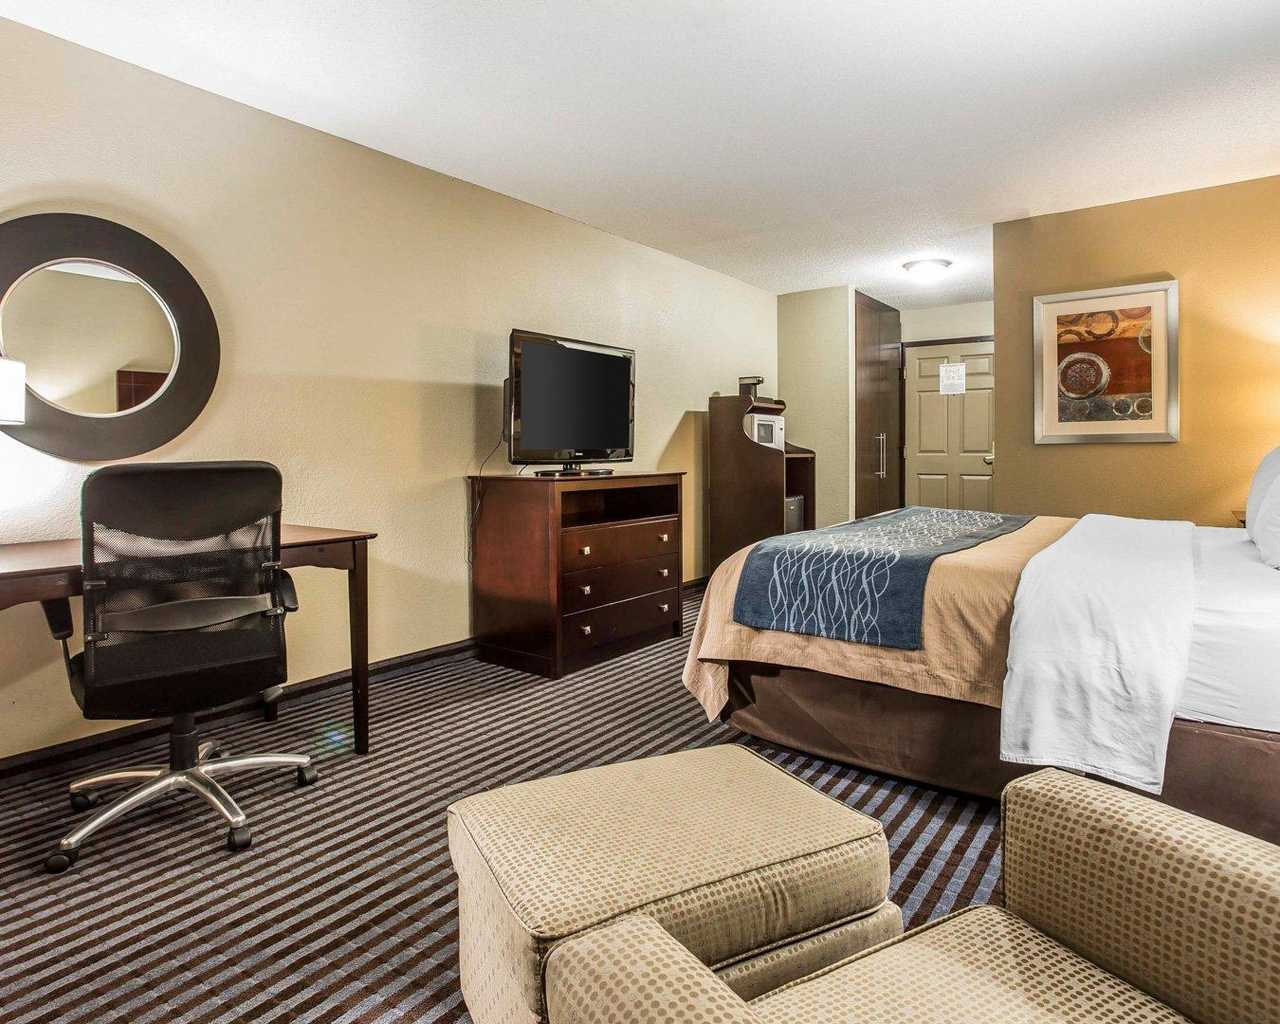 Comfort Inn & Suites Ballpark Area - King Bed Room-2